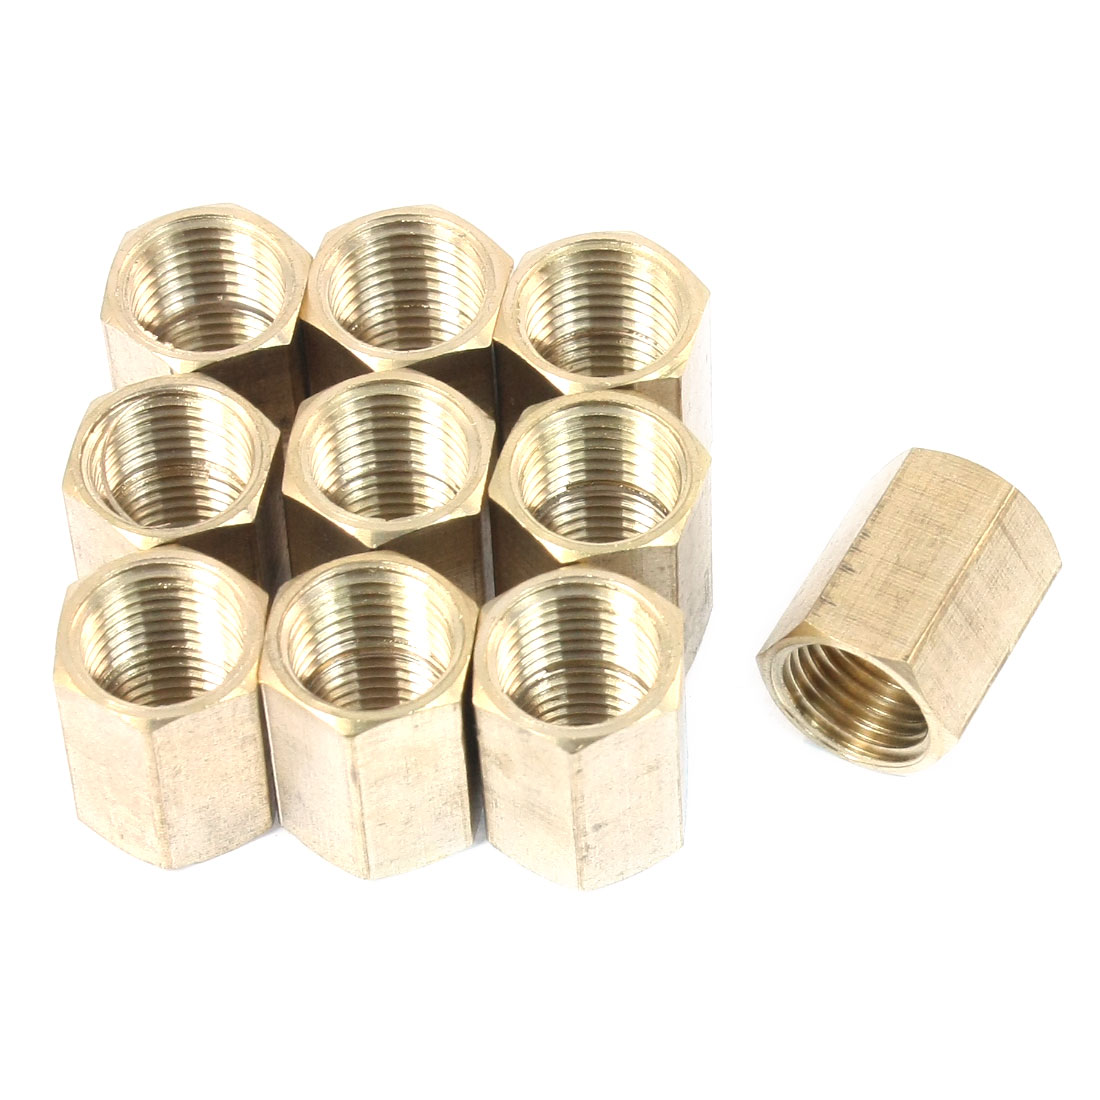 10PCS 1/4PT Female Thread Straight Quick Release Coupler Fitting Joint Connector Adapter Fastener Brass Tone